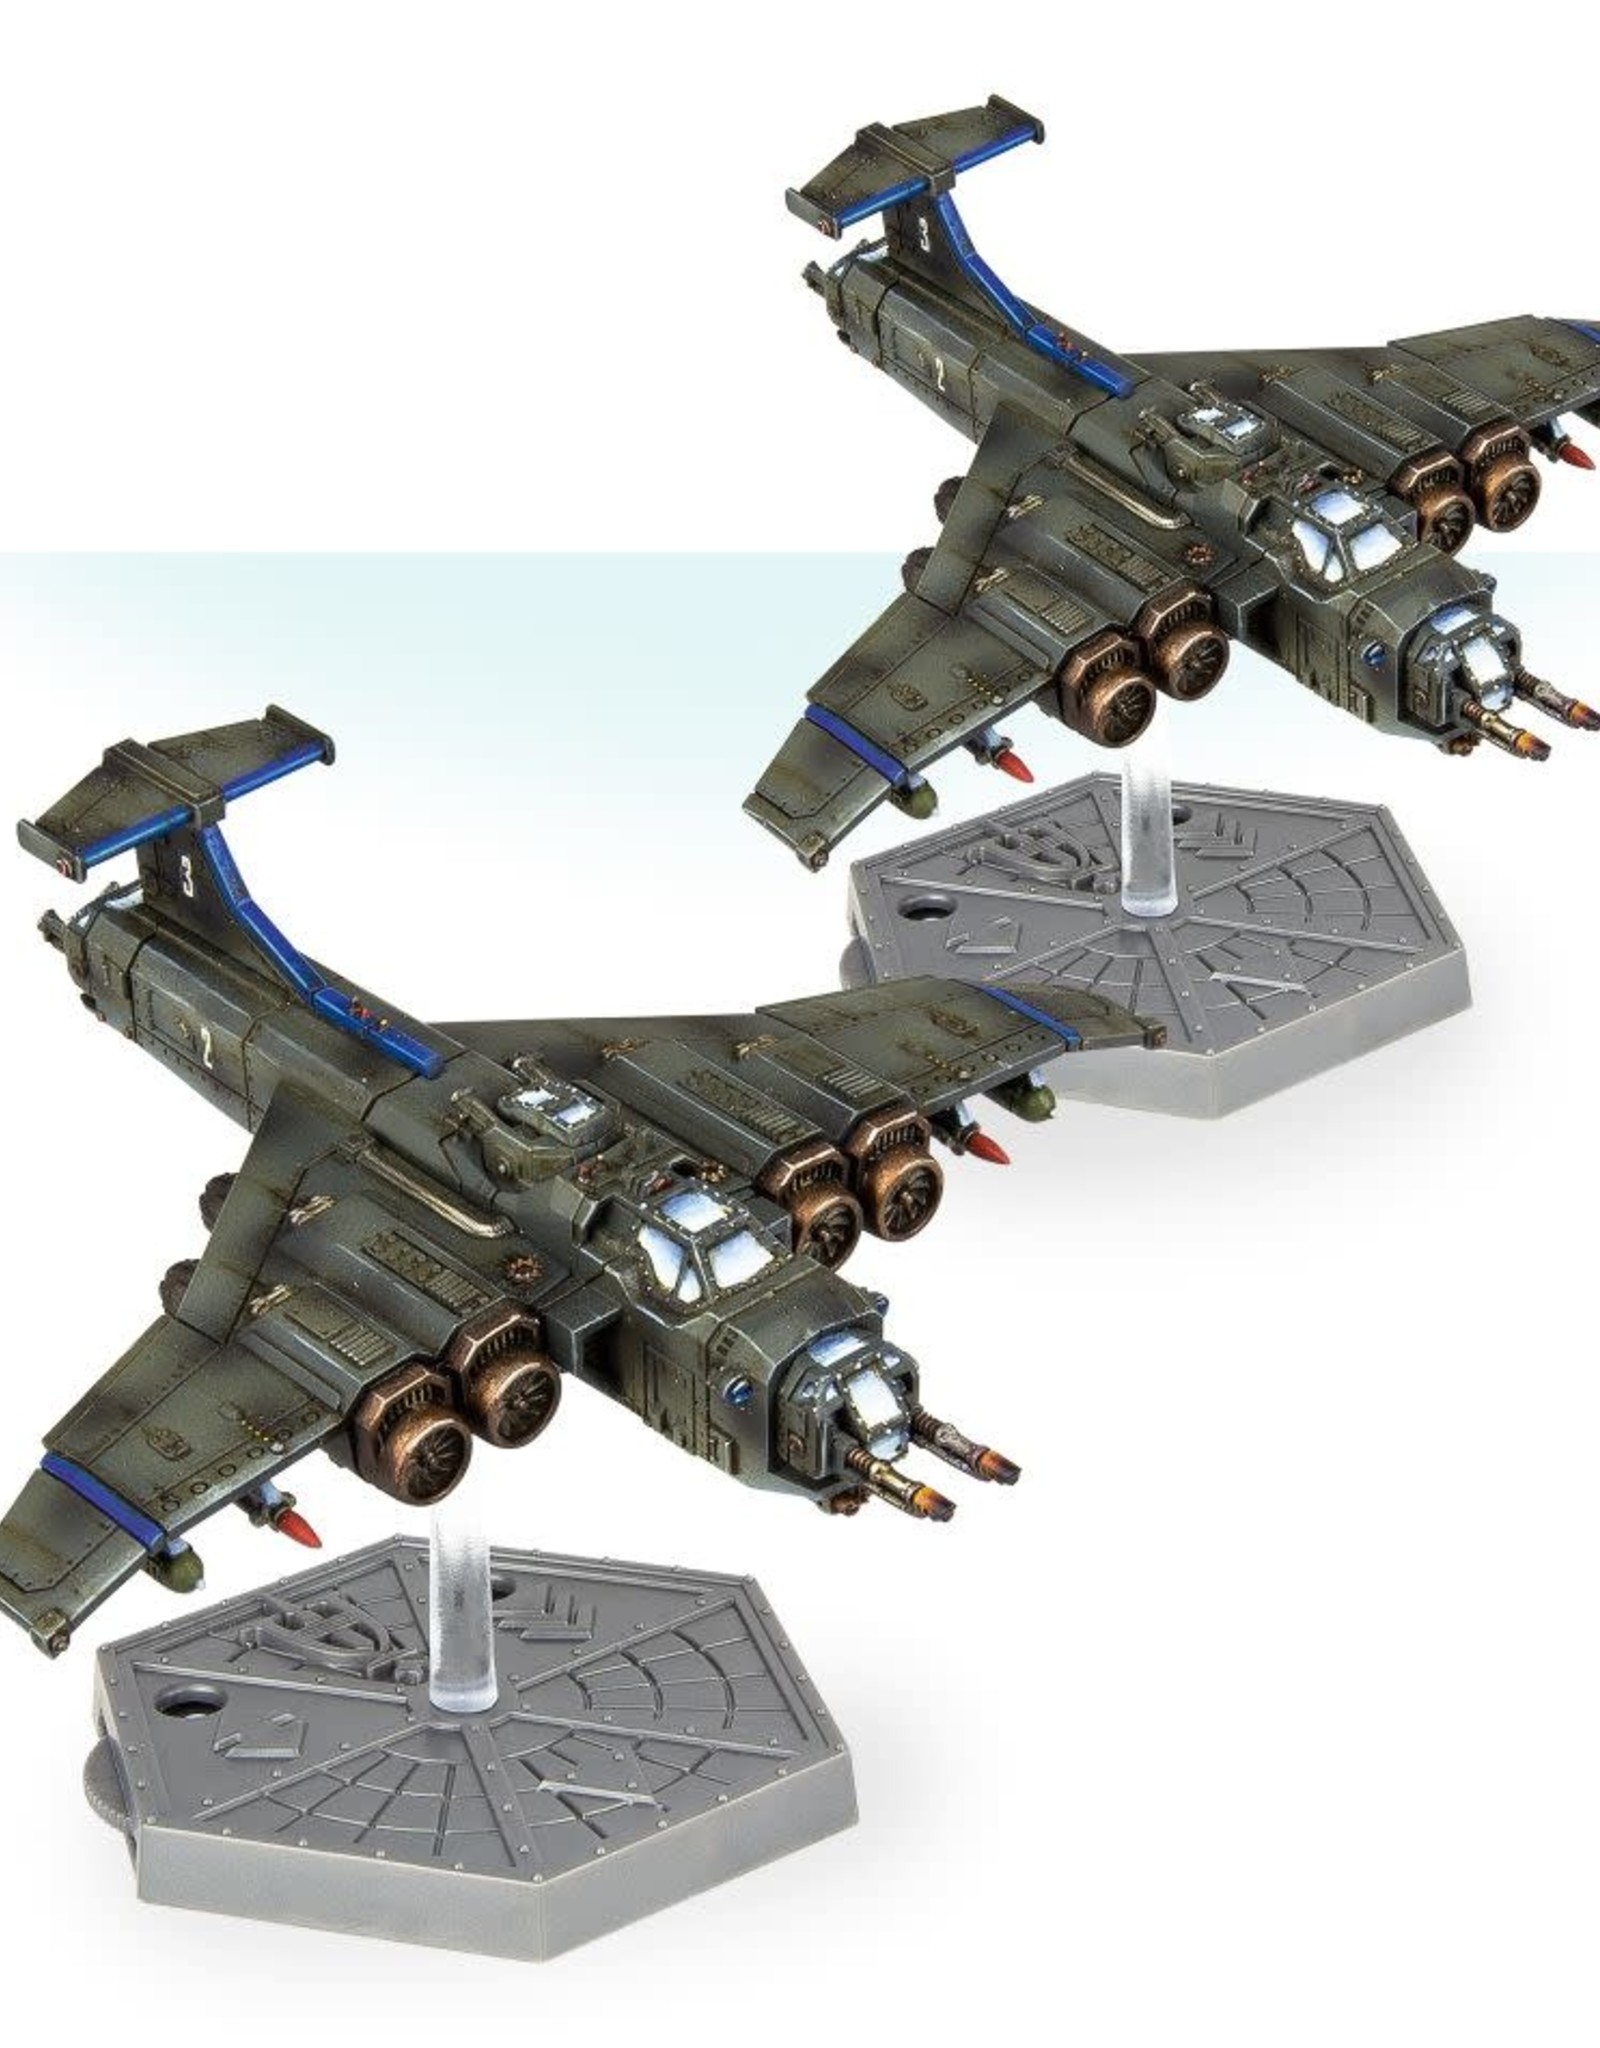 Games Workshop A/I: IMPERIAL NAVY MARAUDER  BOMBERS